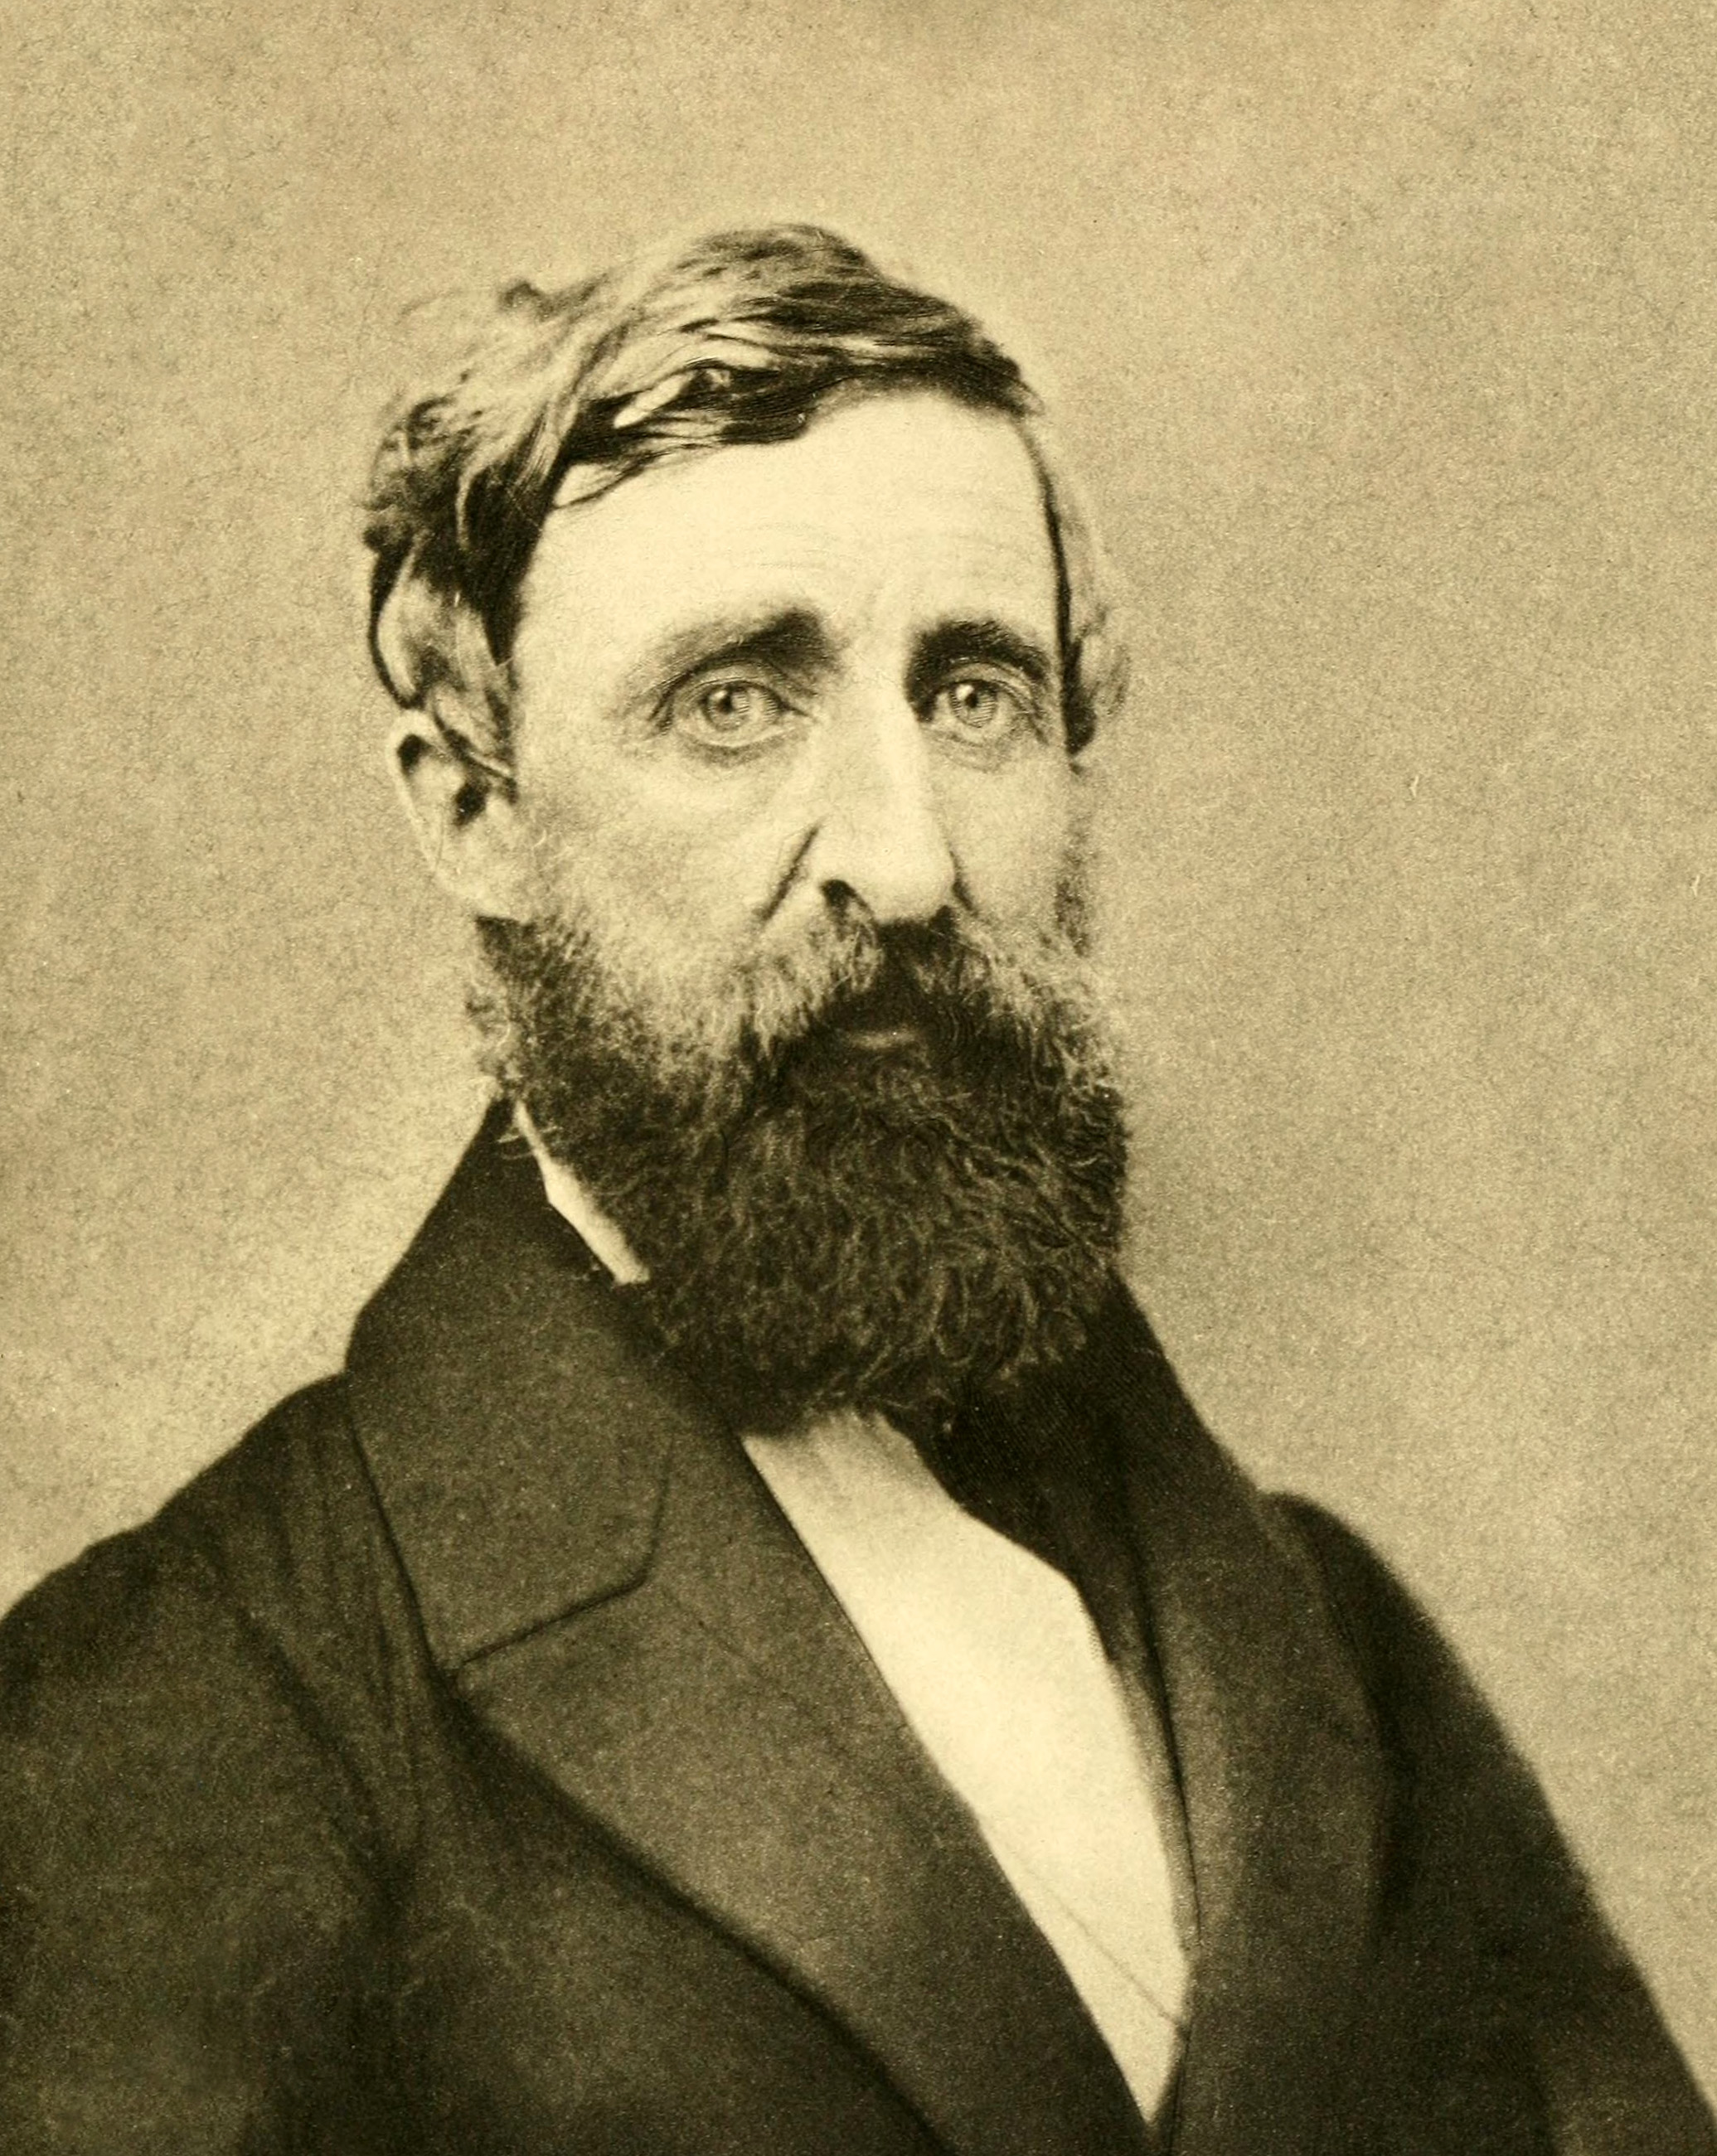 Voluntaryist com - Highway Tax vs Poll Tax: Some Thoreau Tax Trivia